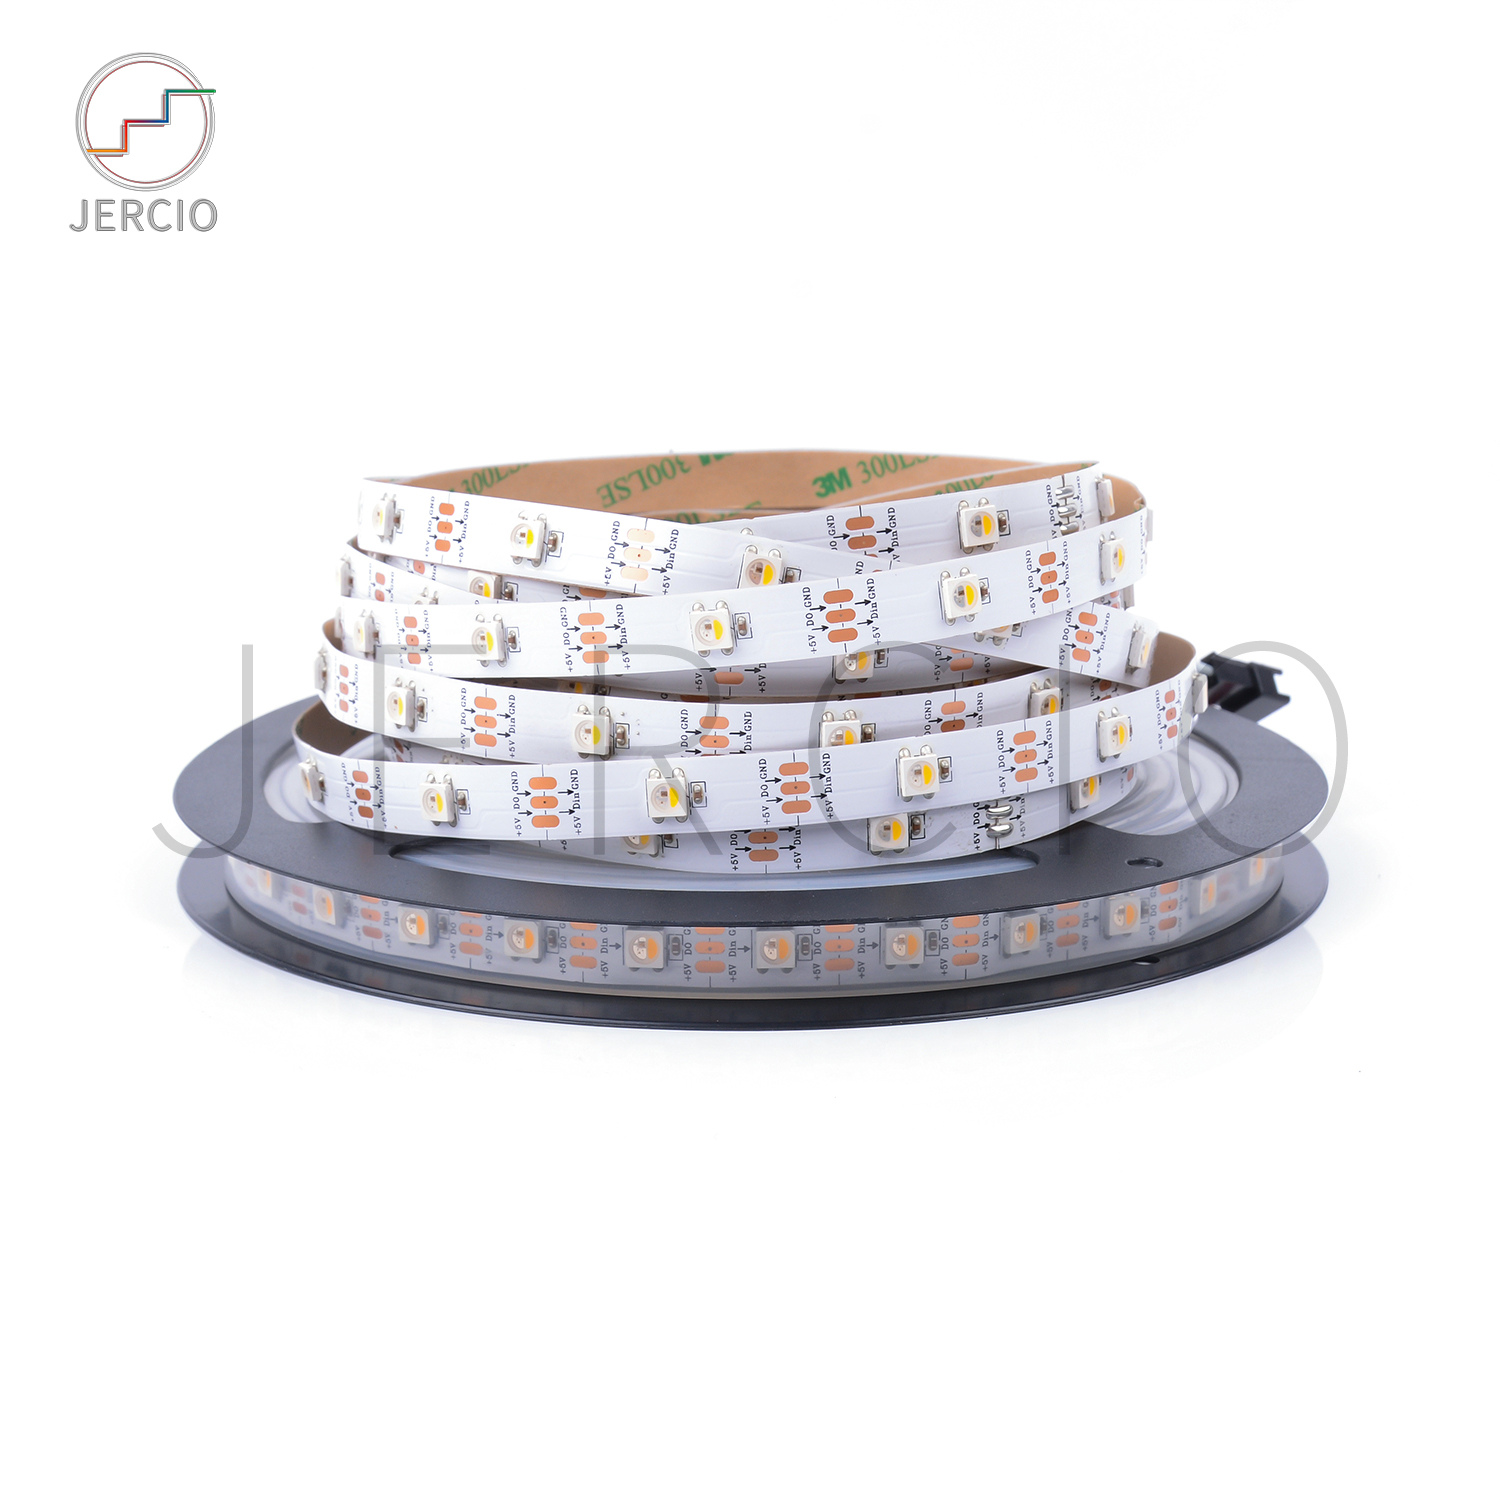 JERCIO SK6812 / WS2812 / XT1511 RGBW 4 in 1 individually addressable smd 5050 led strip with 60leds for decorative advertising